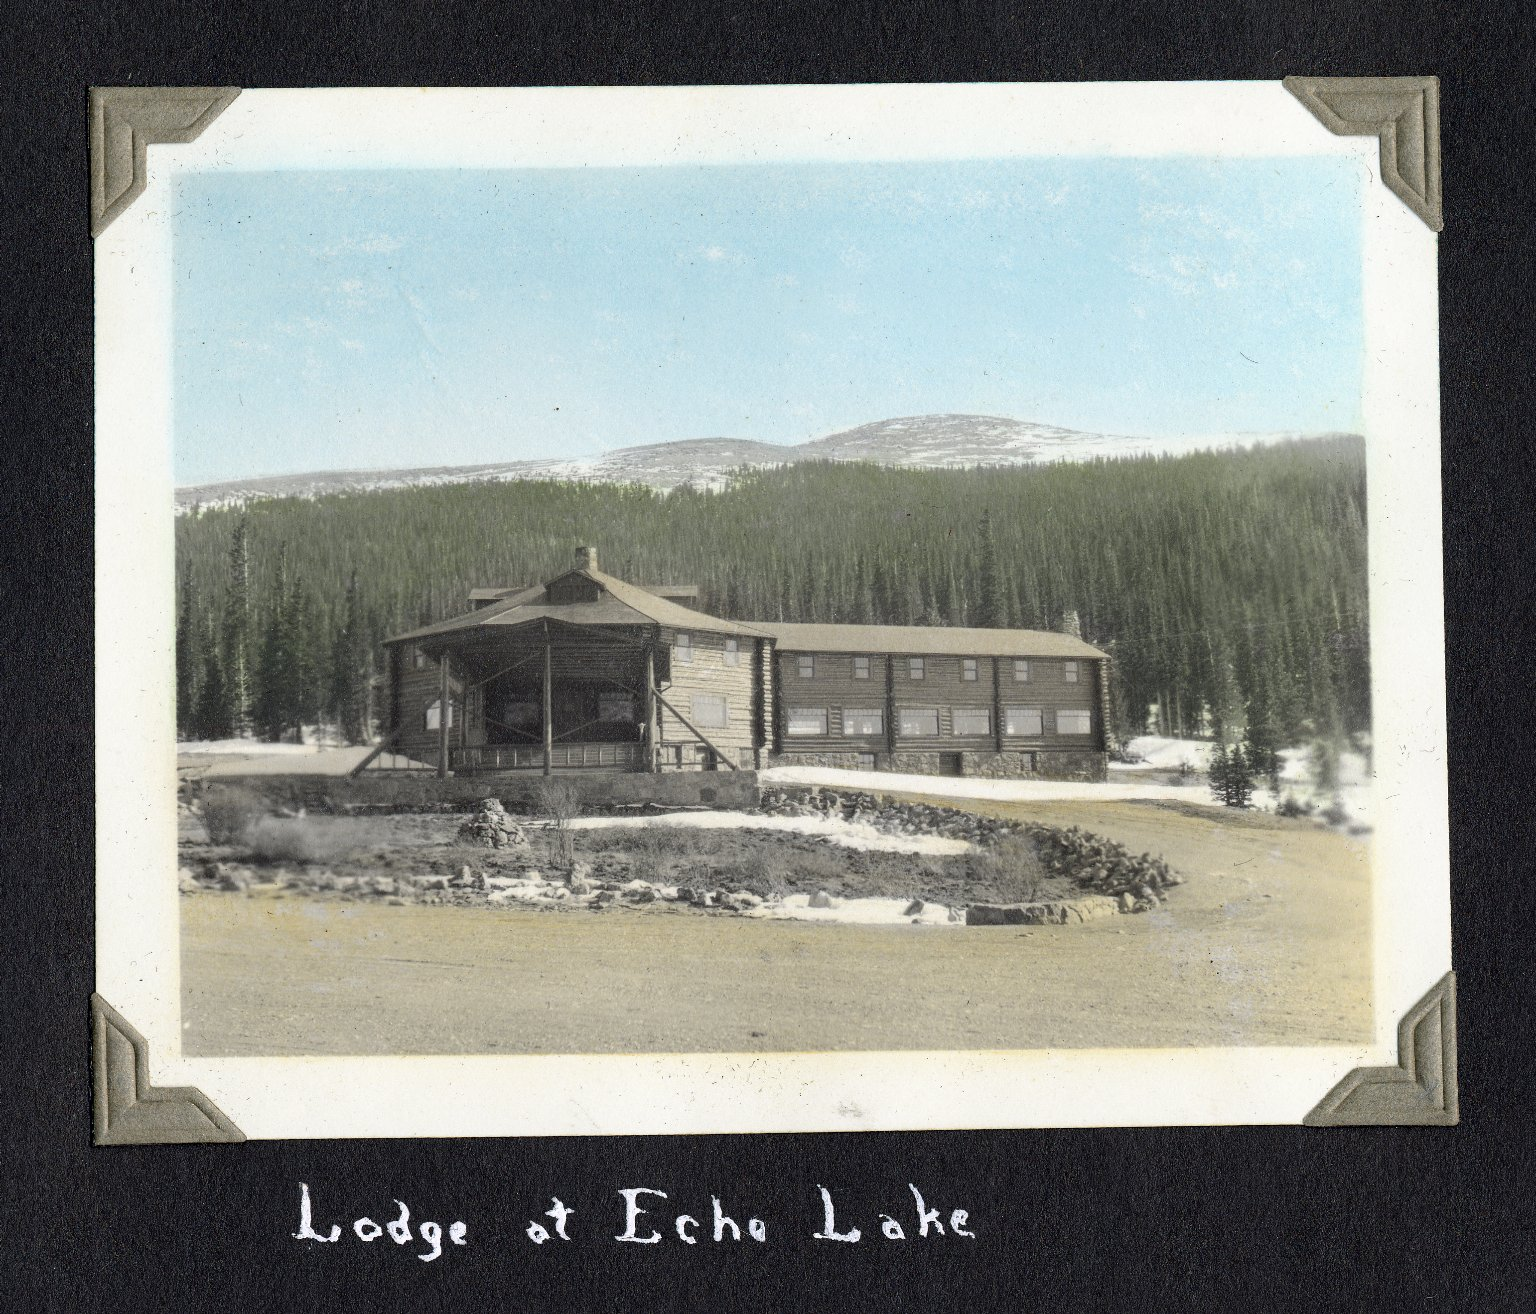 Lodge at Echo Lake